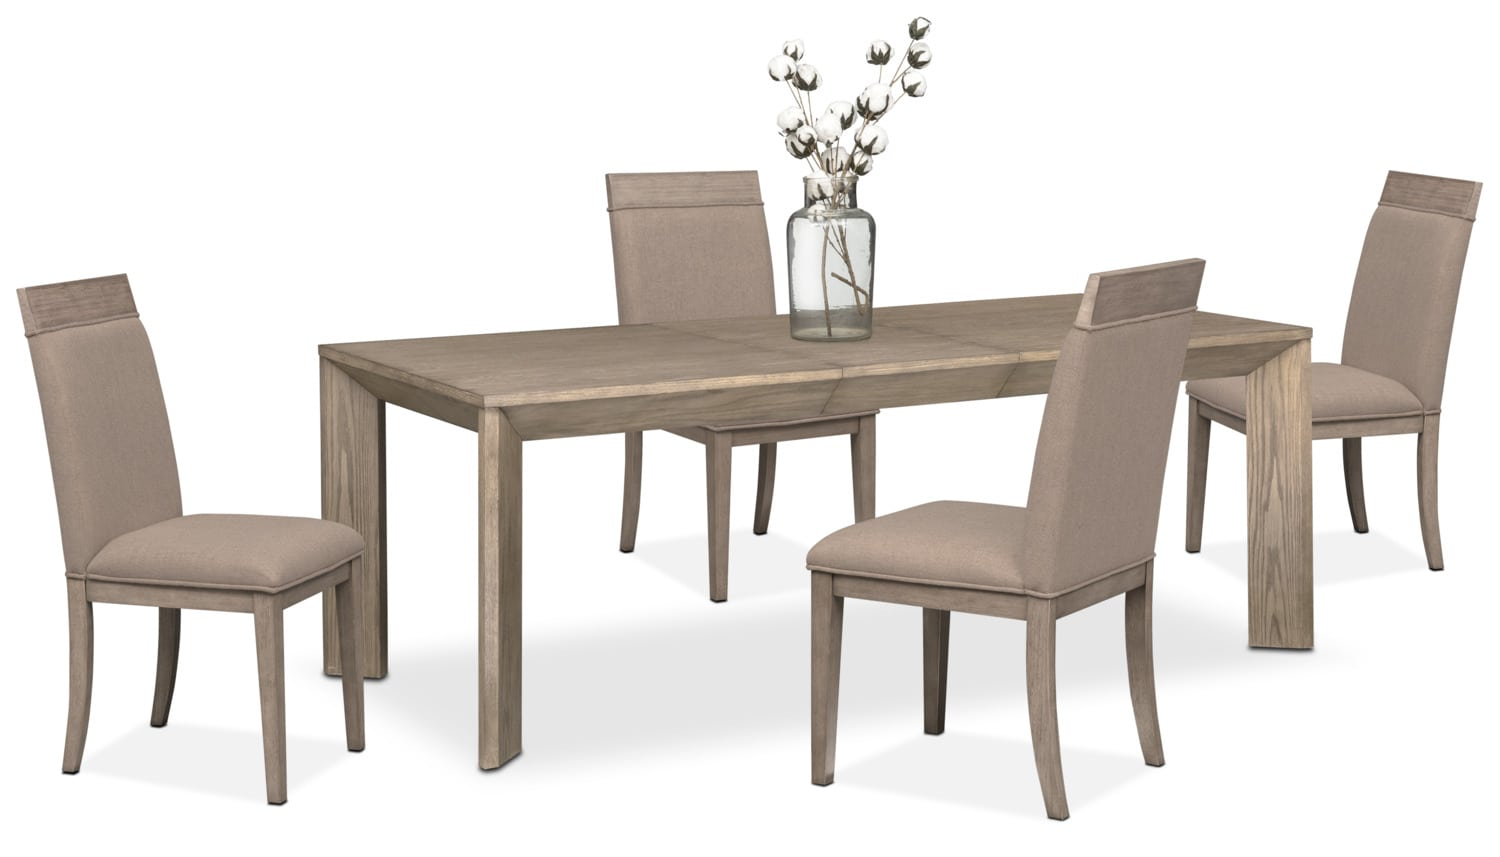 $629.95 Gavin Table And 4 Side Chairs   Graystone